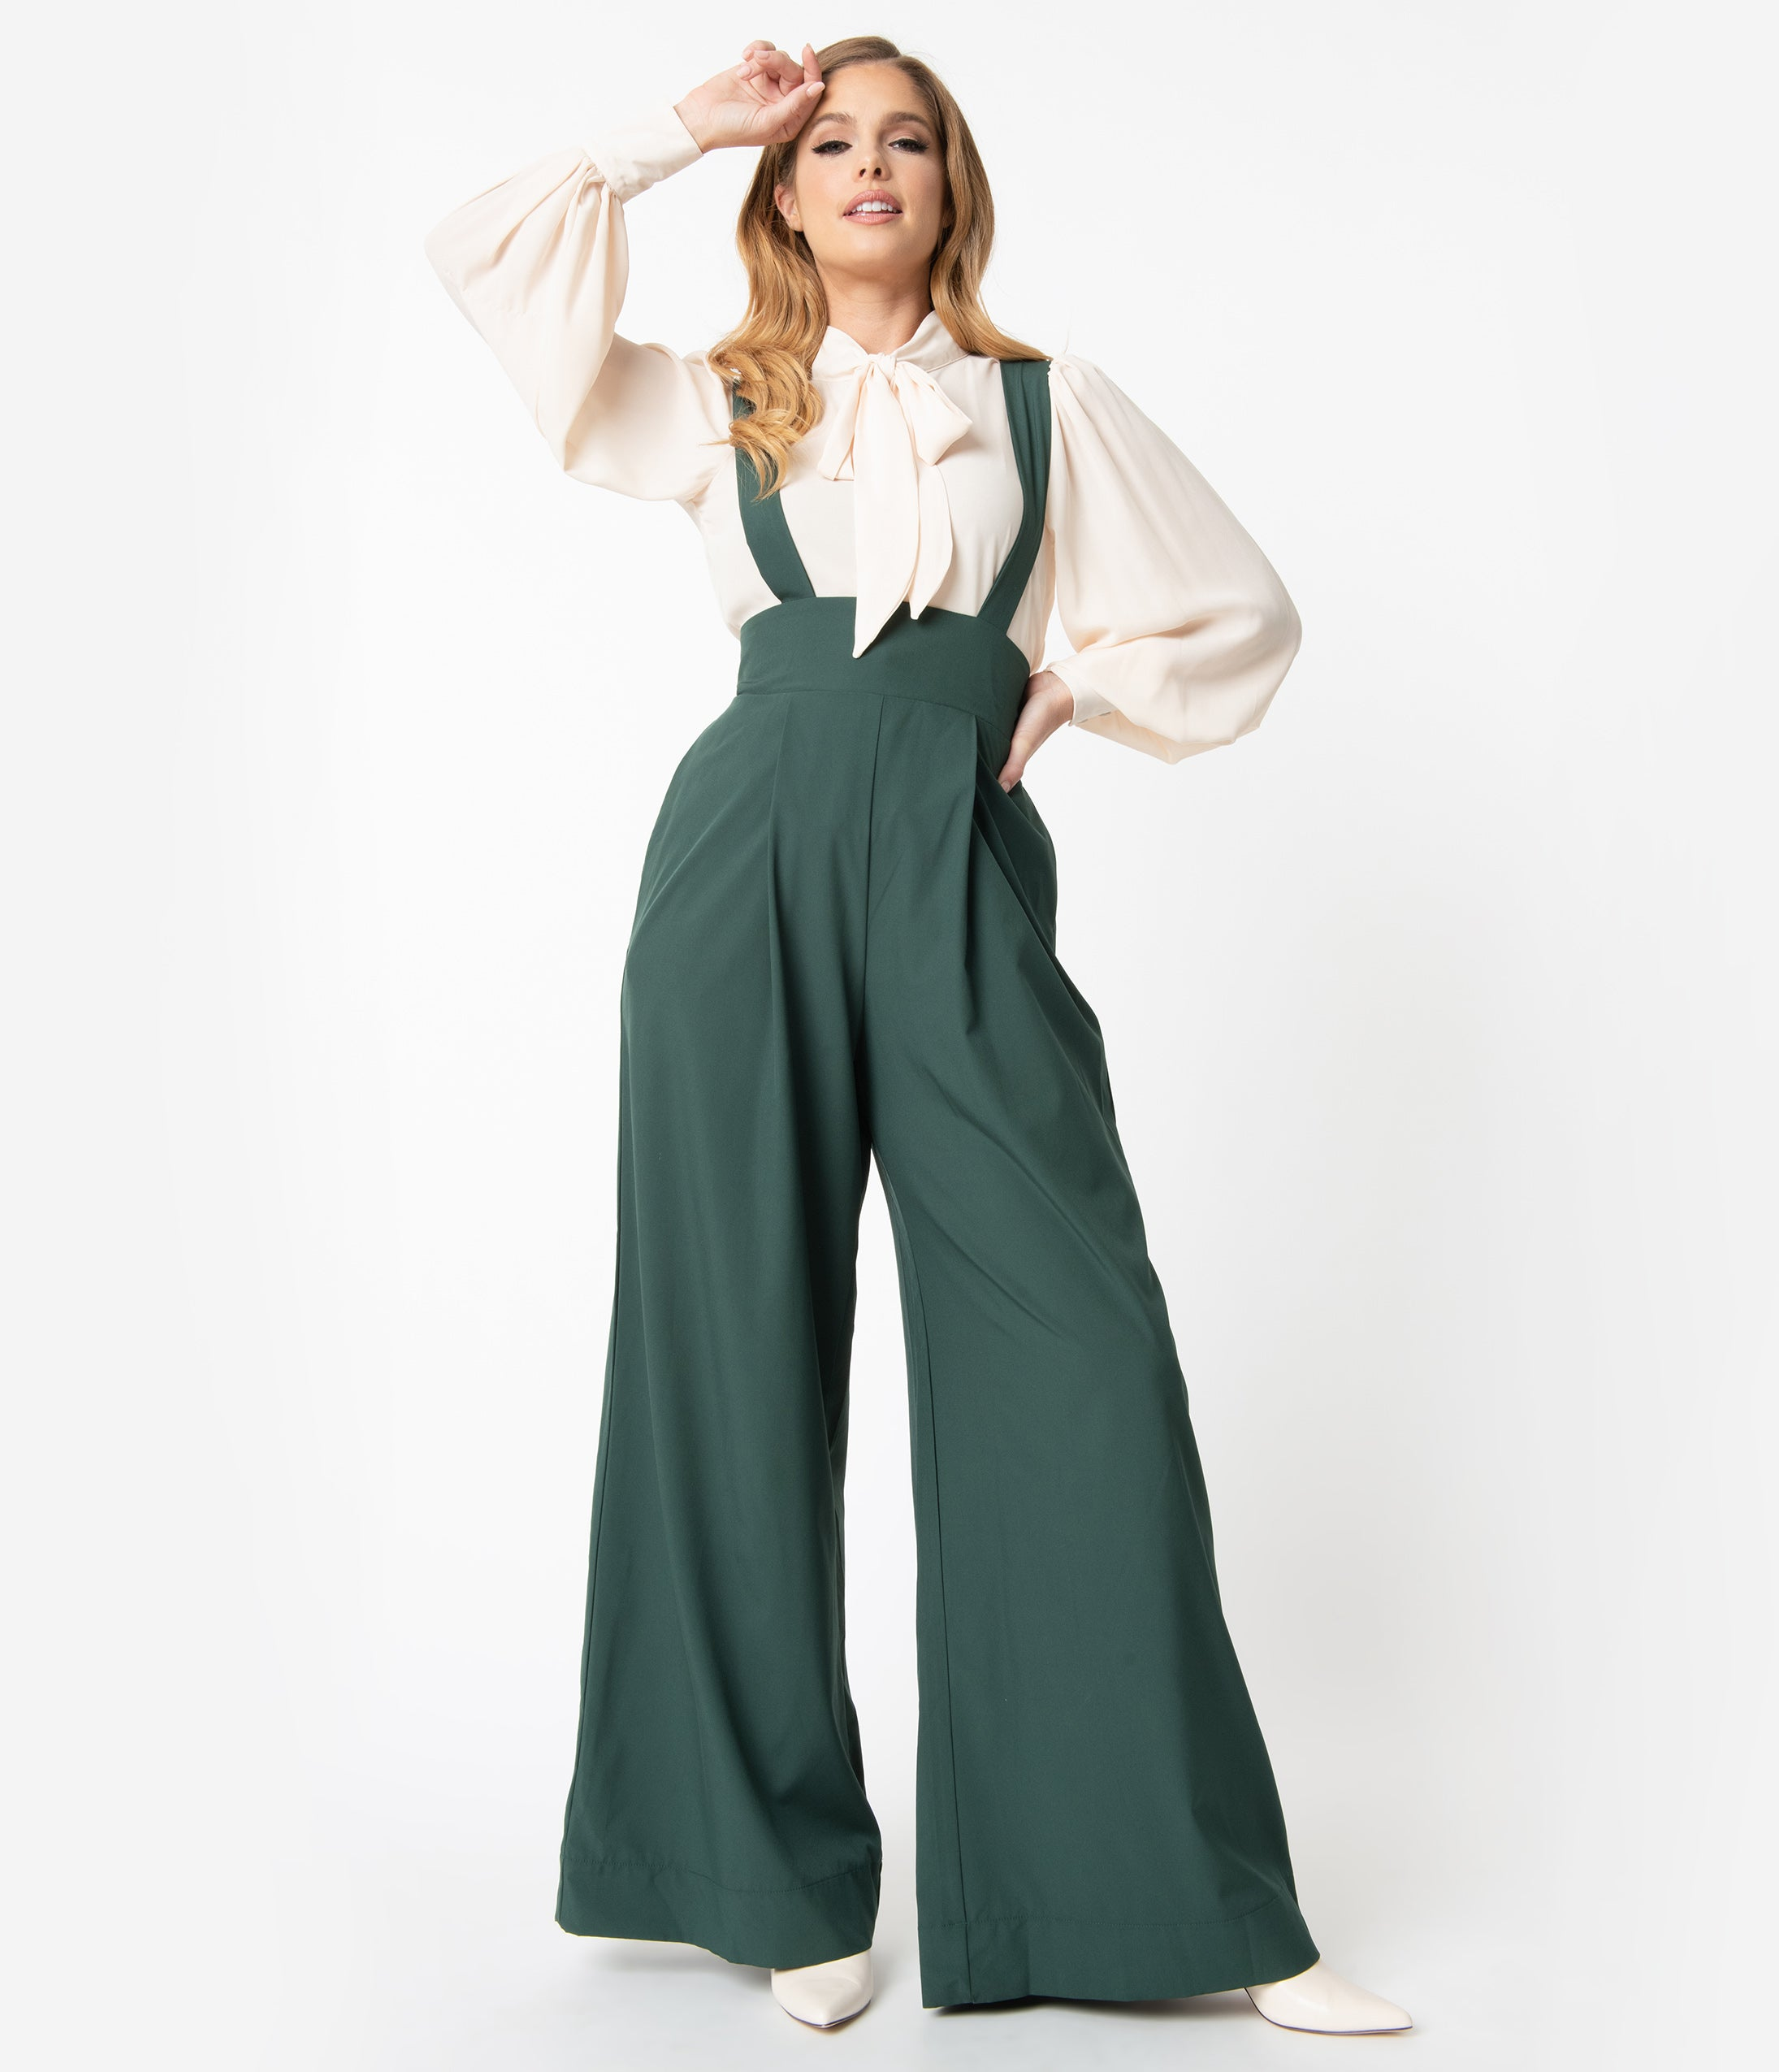 Vintage High Waisted Trousers, Sailor Pants, Jeans Unique Vintage Green High Waist Rochelle Suspender Pants $64.00 AT vintagedancer.com